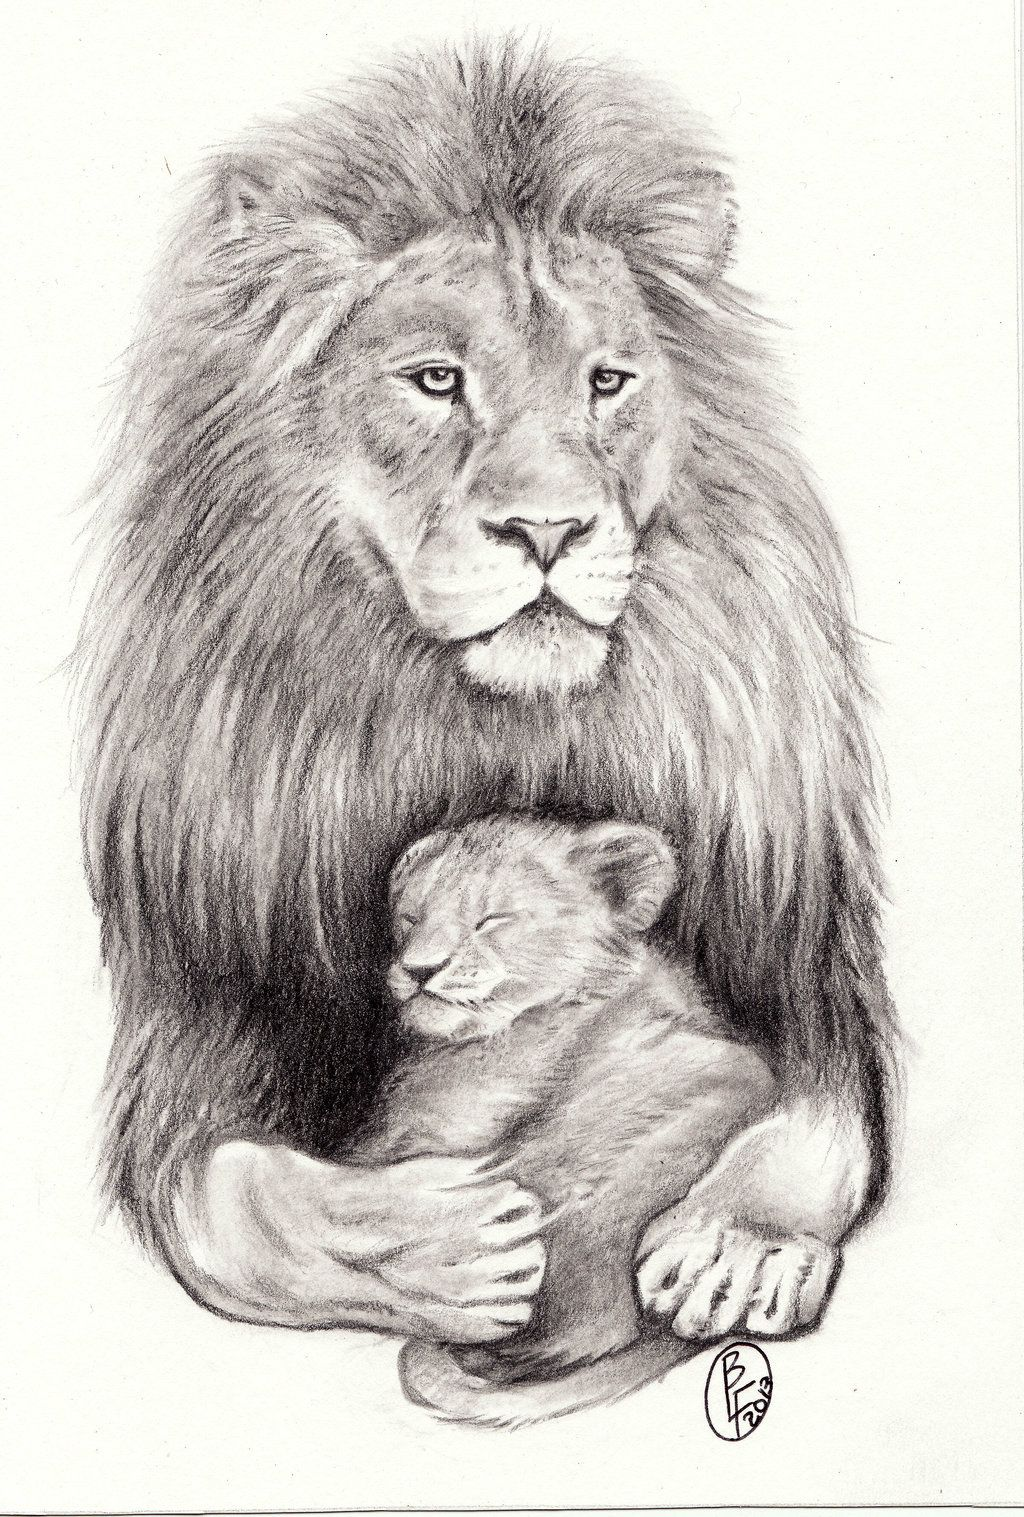 150 realistic lion tattoos and meanings 2017 collection - Lion With Sleeping Cub By D Angeline Designs Interfaces Tattoo Design